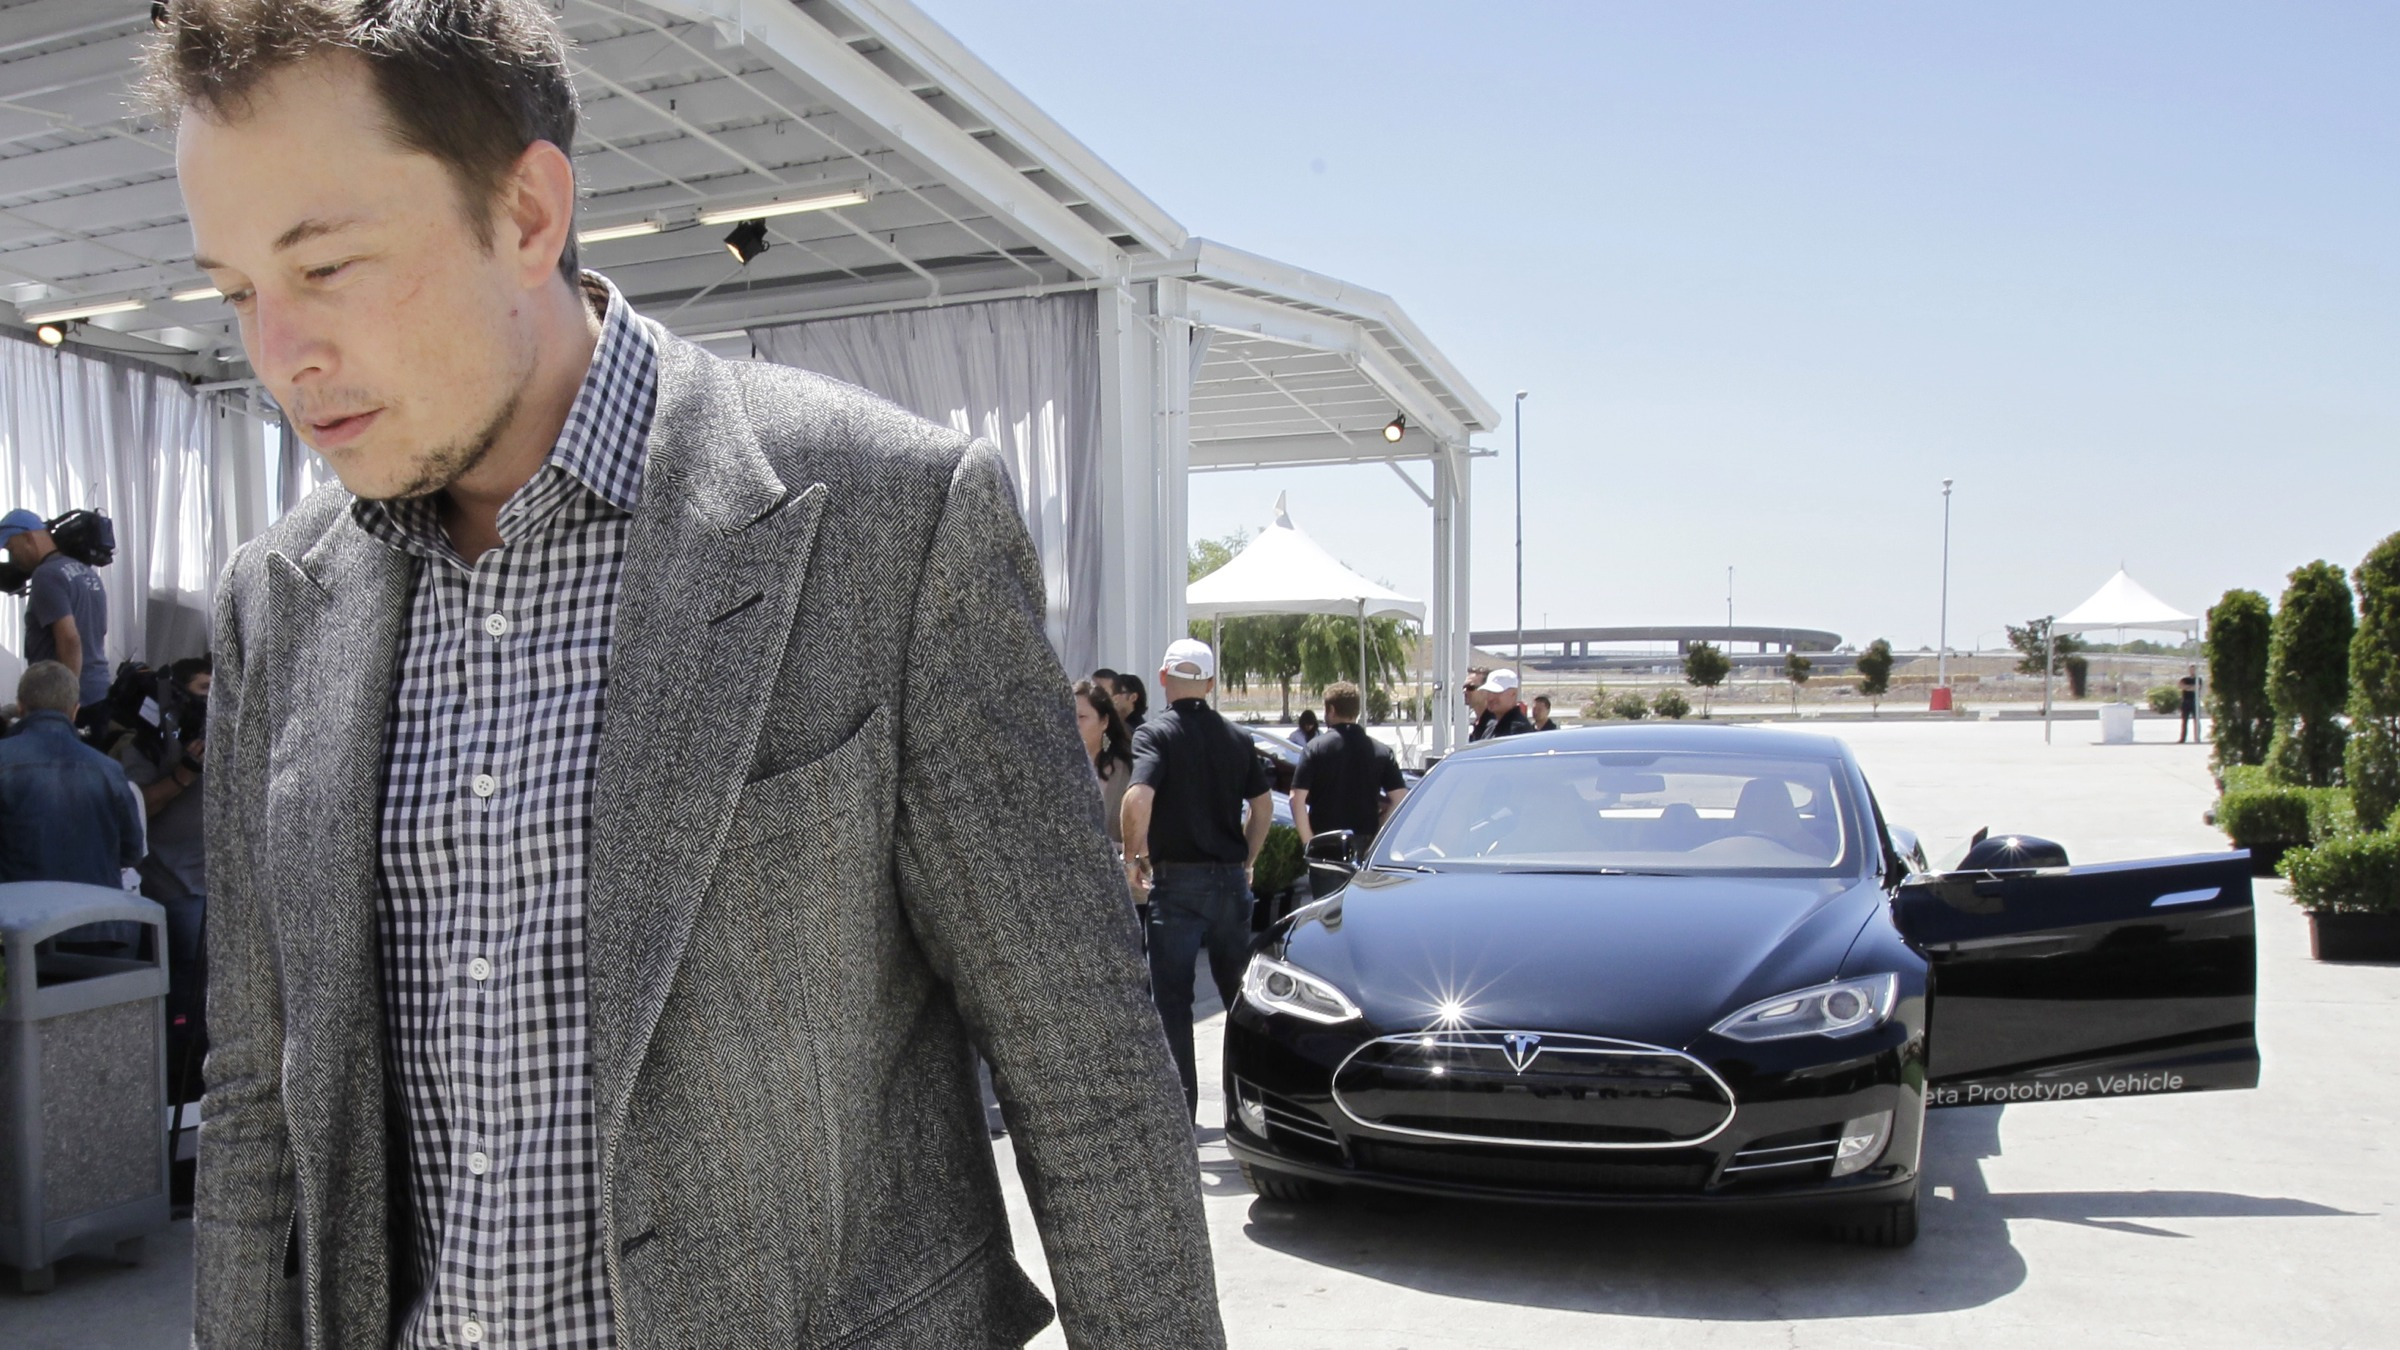 Tesla CEO Elon Musk walks past the Tesla Model S after a news conference at the Tesla factory in Fremont, Calif., Friday, June 22, 2012. The first Model S sedan car will be rolling off the assembly line on Friday.  (AP Photo/Paul Sakuma)